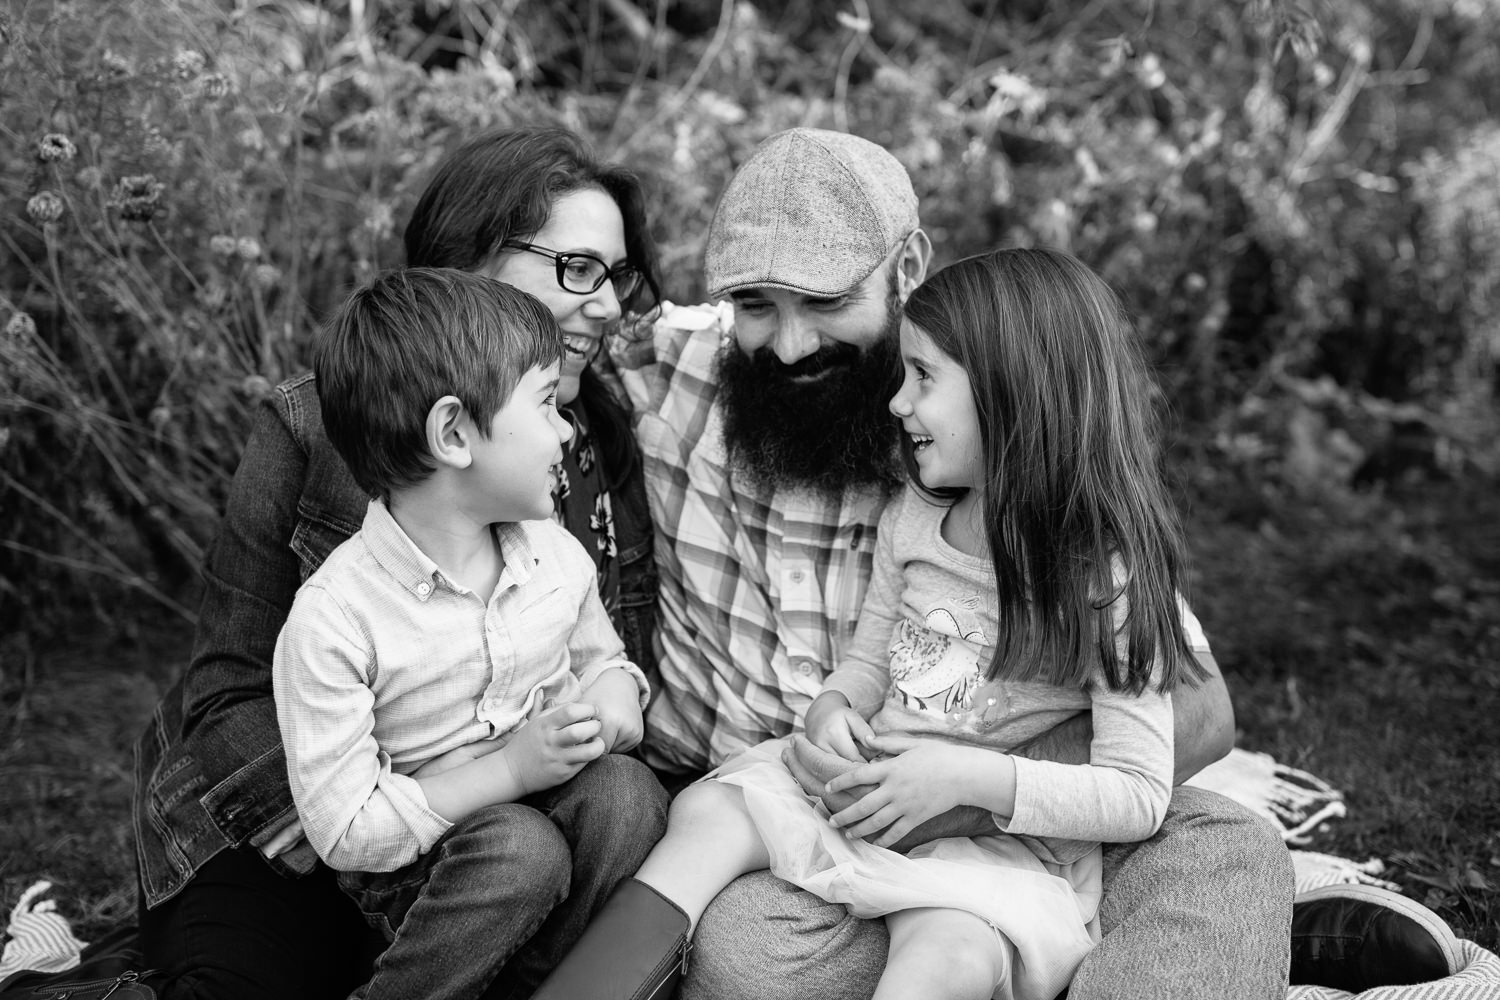 family of four sitting on blanket under willow tree, 4 year old boy sitting in mom's lap, 5 year old girl sitting in dad's lap, looking at one another and smiling - Newmarket In-Home Photos